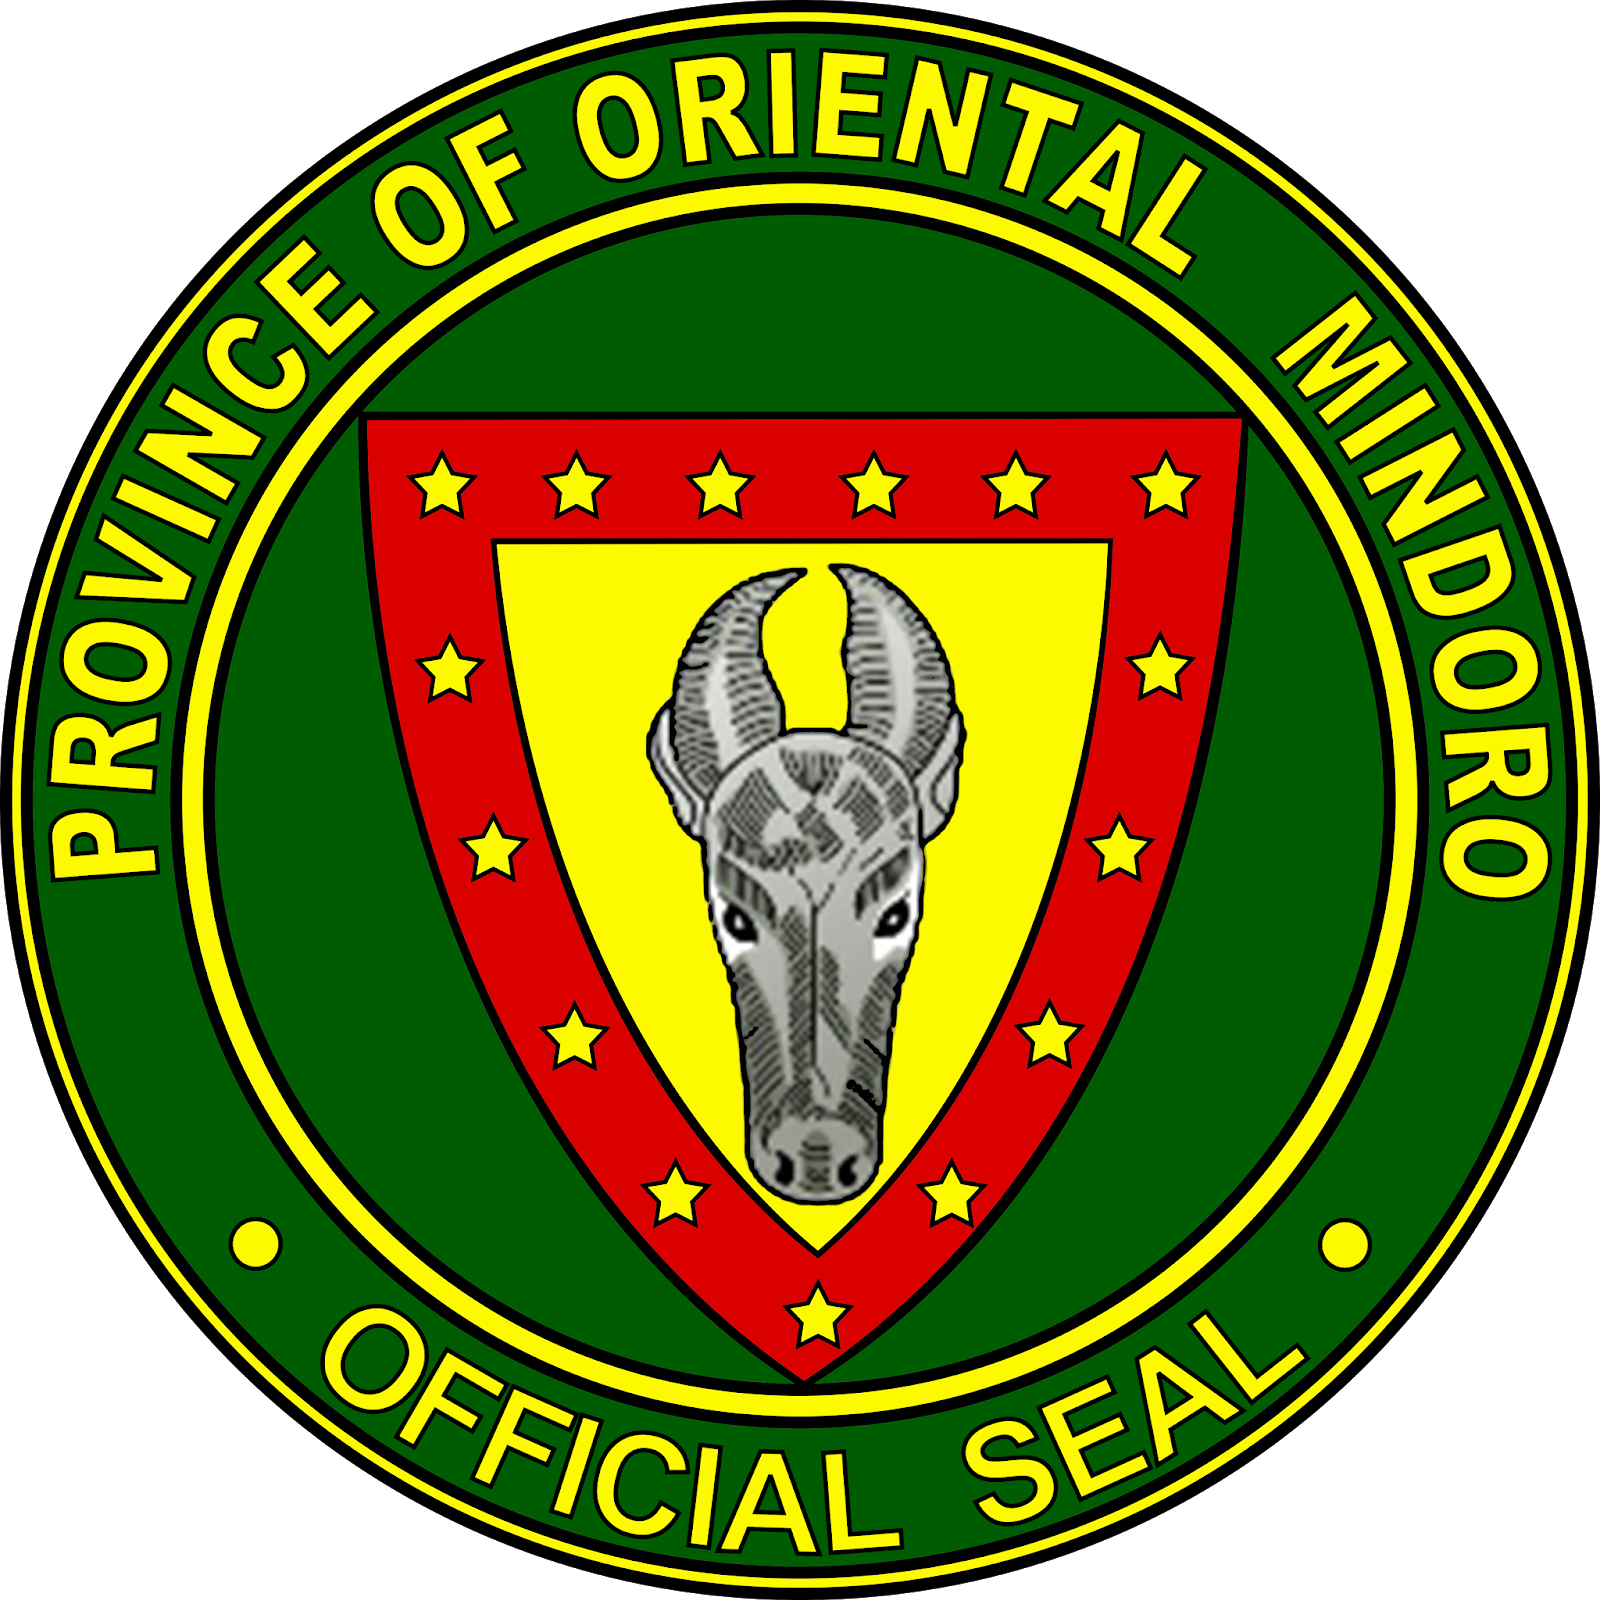 Province of Oriental Mindoro Official Seal